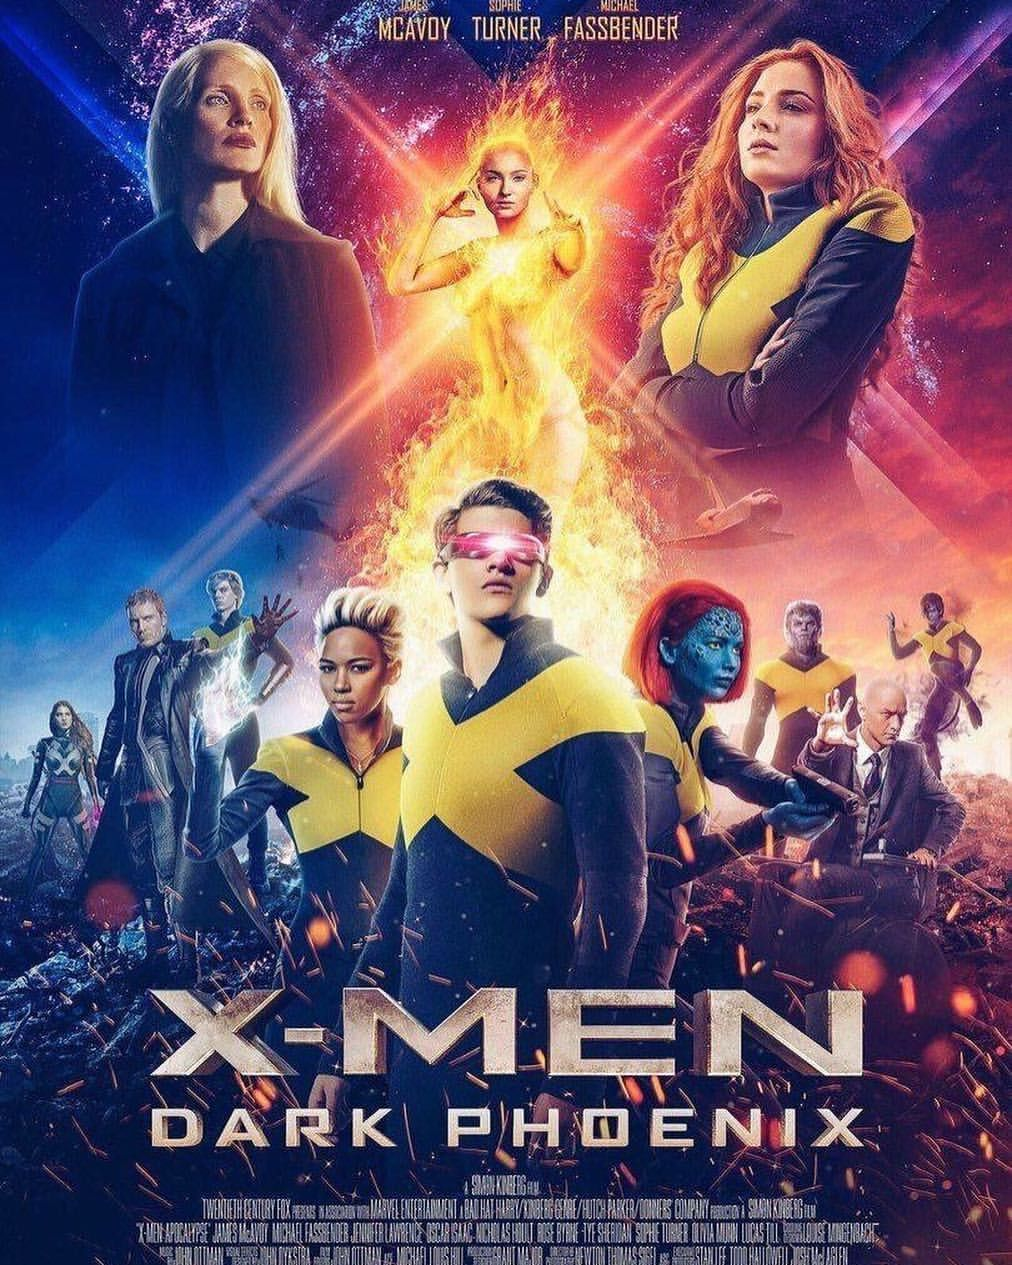 A New Poster For Dark Phoenix Has Surfaced Online Are You Ready To See What May Be The Final Film In The X Men Marvel Movie Posters Dark Phoenix Xmen Movie